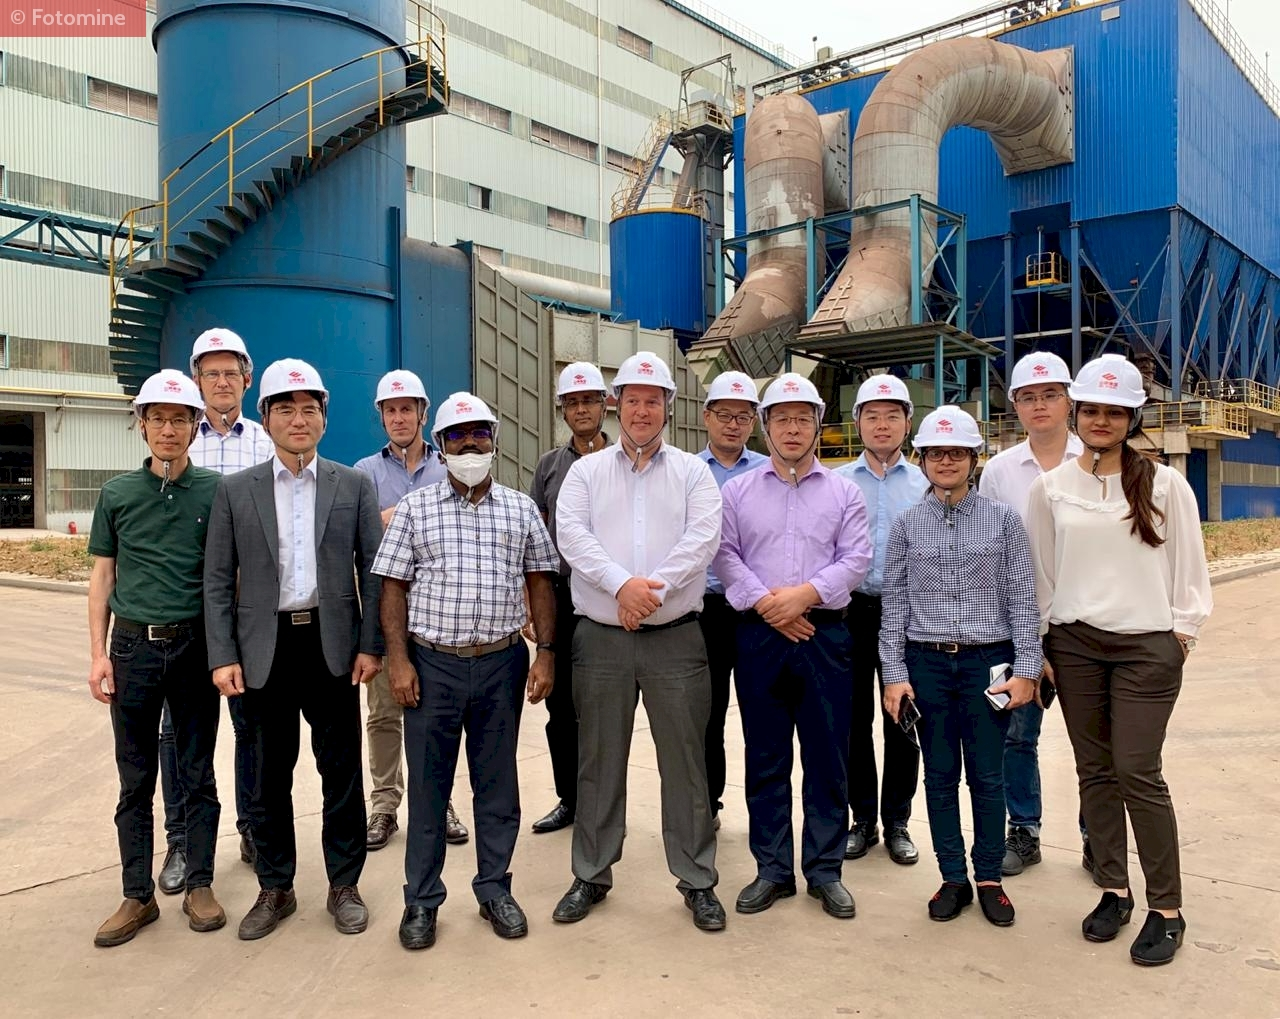 Plant Visit Conducted by SteelMint to China's Rizhao Steel in Shandong Province